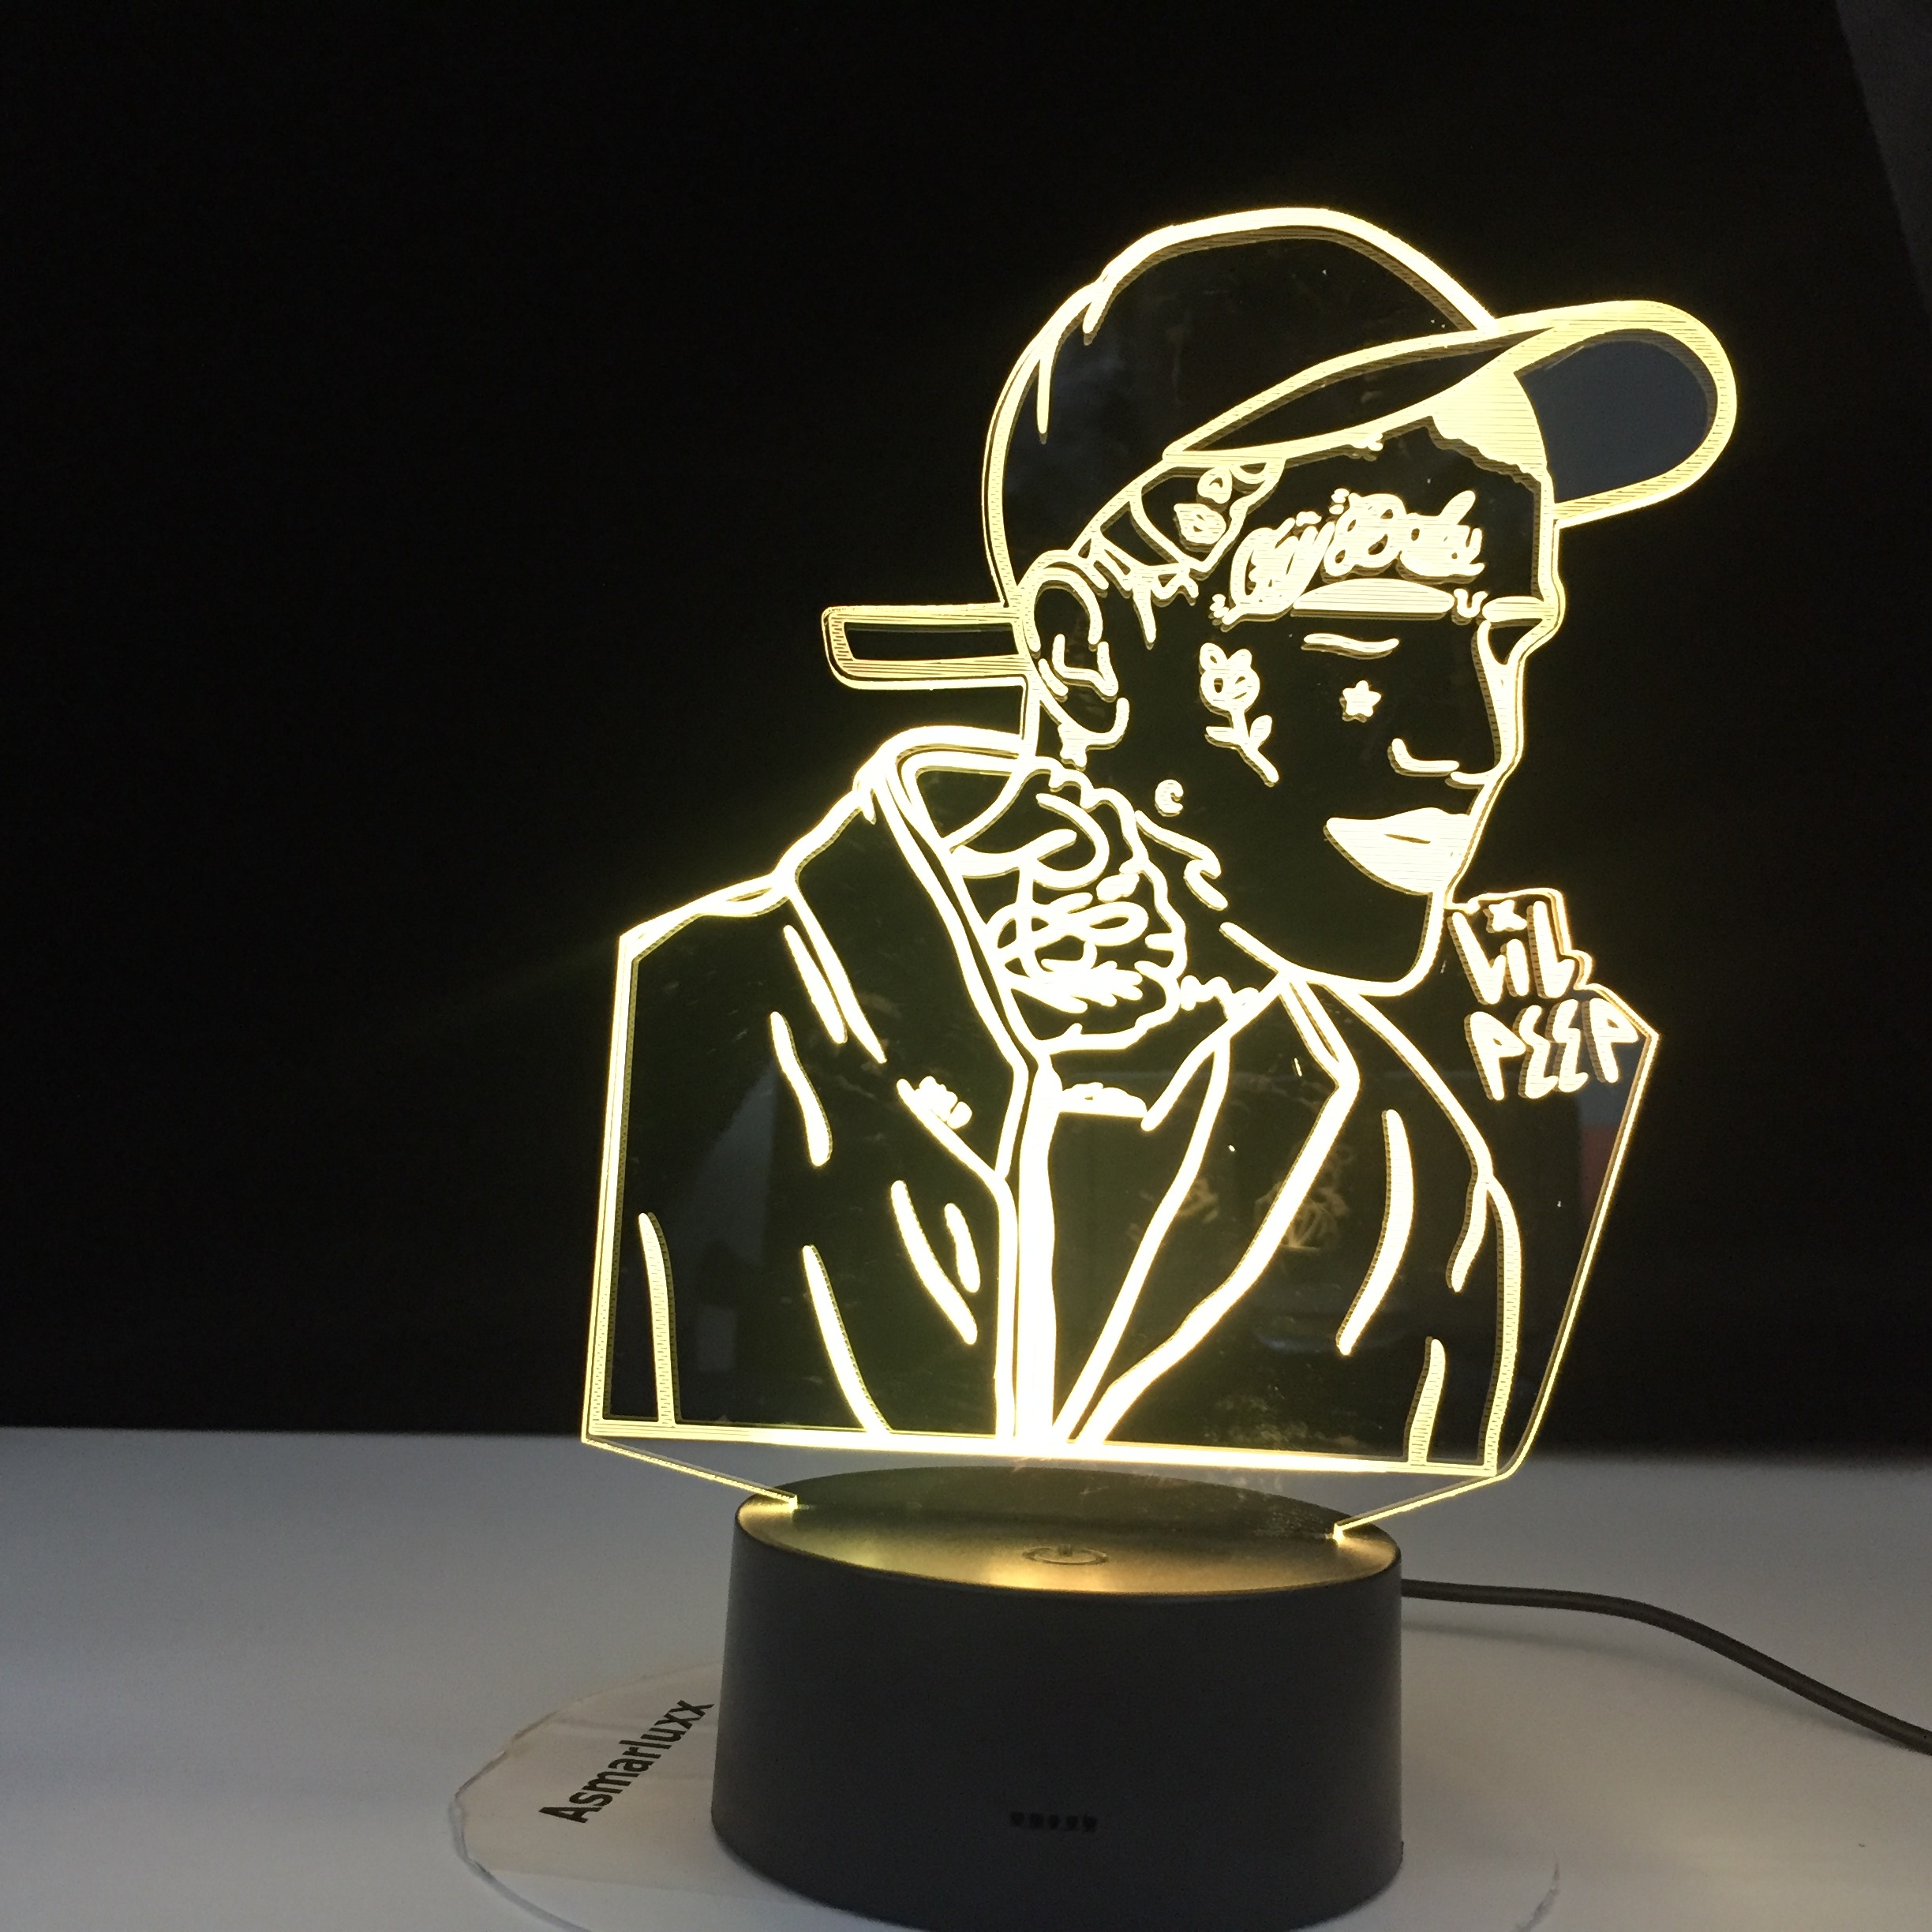 Lil Peep American Popular Rapper 3D Led Night Light For Home Decoration Colorful Celebrity Nightlight Gift For Fans Dropshipping